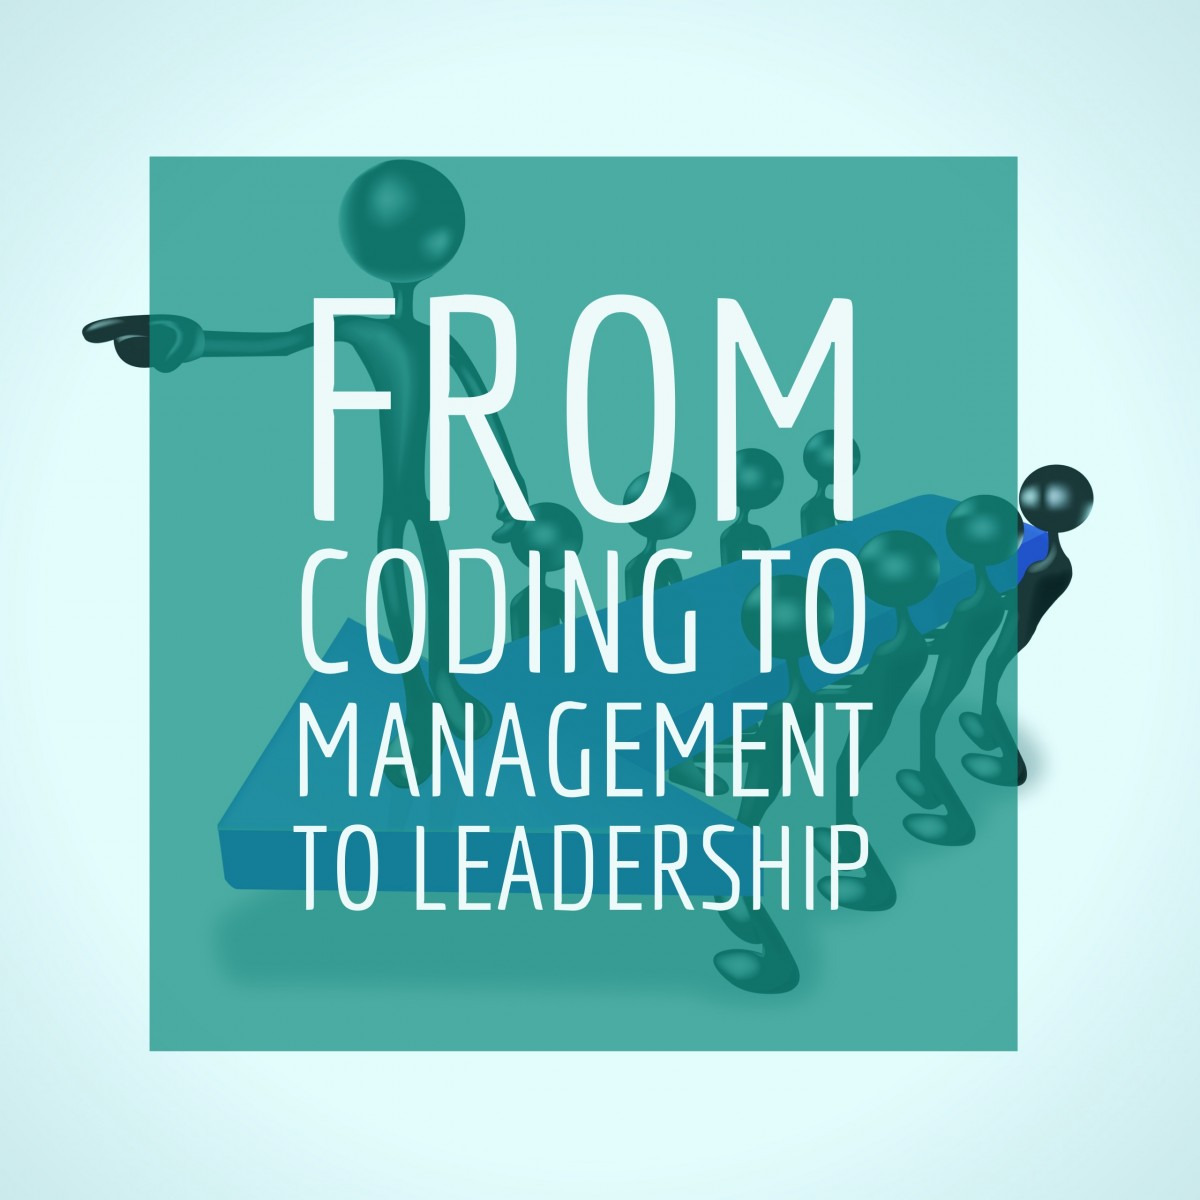 From Coding to Management to Leadership